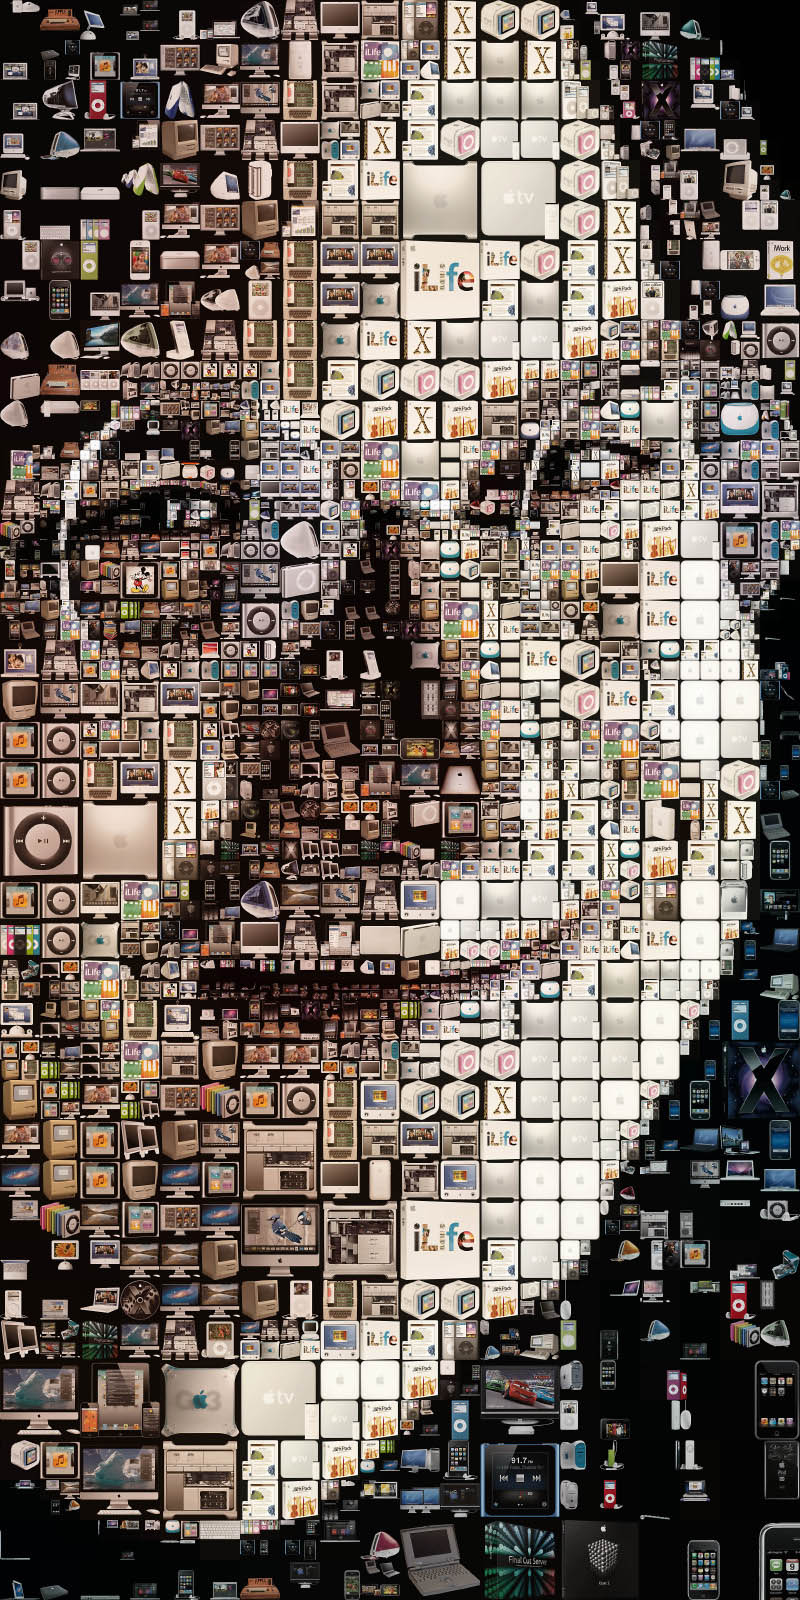 Celebrity Photo Mosaics by Charis Tsevis «TwistedSifter Hugh Laurie 2012